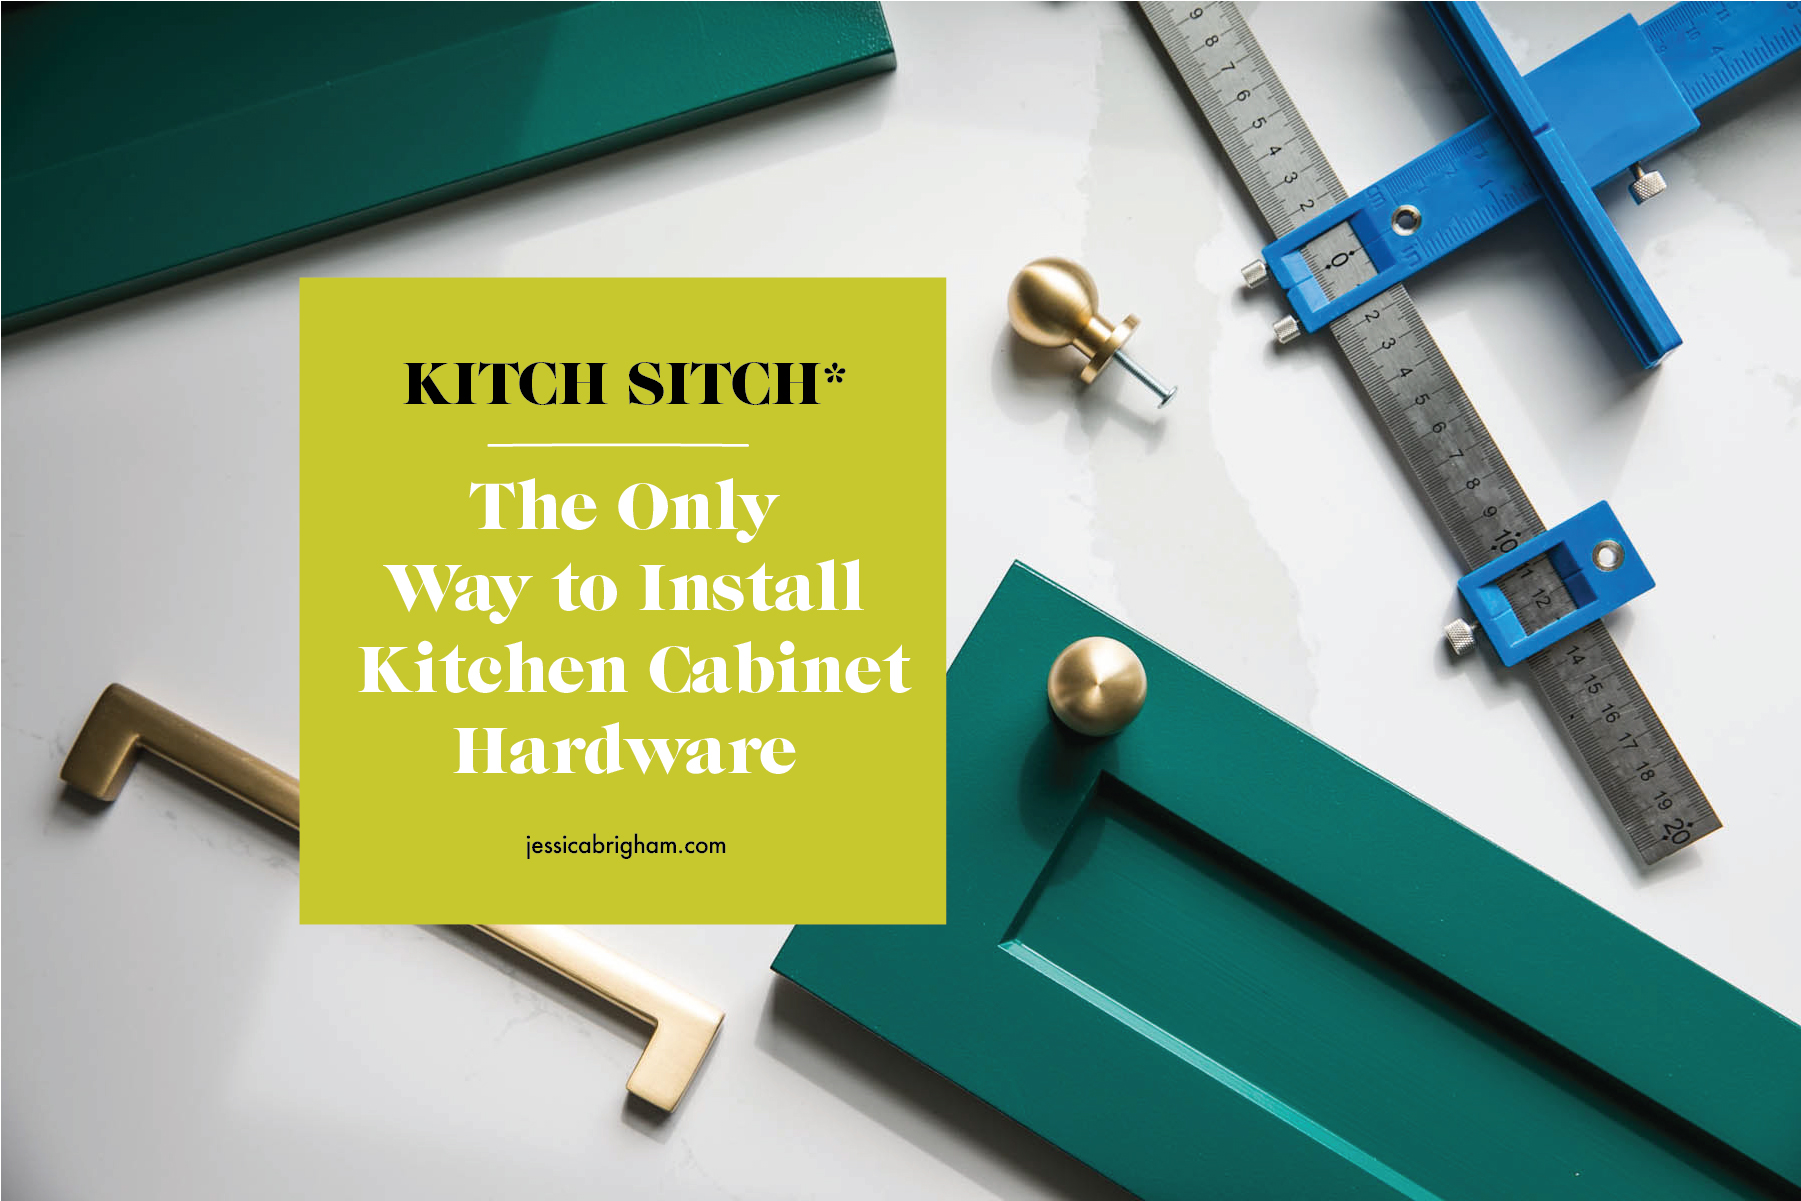 The Only Way to Install Kitchen Cabinet Hardware | Cabinet Hardware Jig | Kitchen Remodel | JessicaBrigham.com